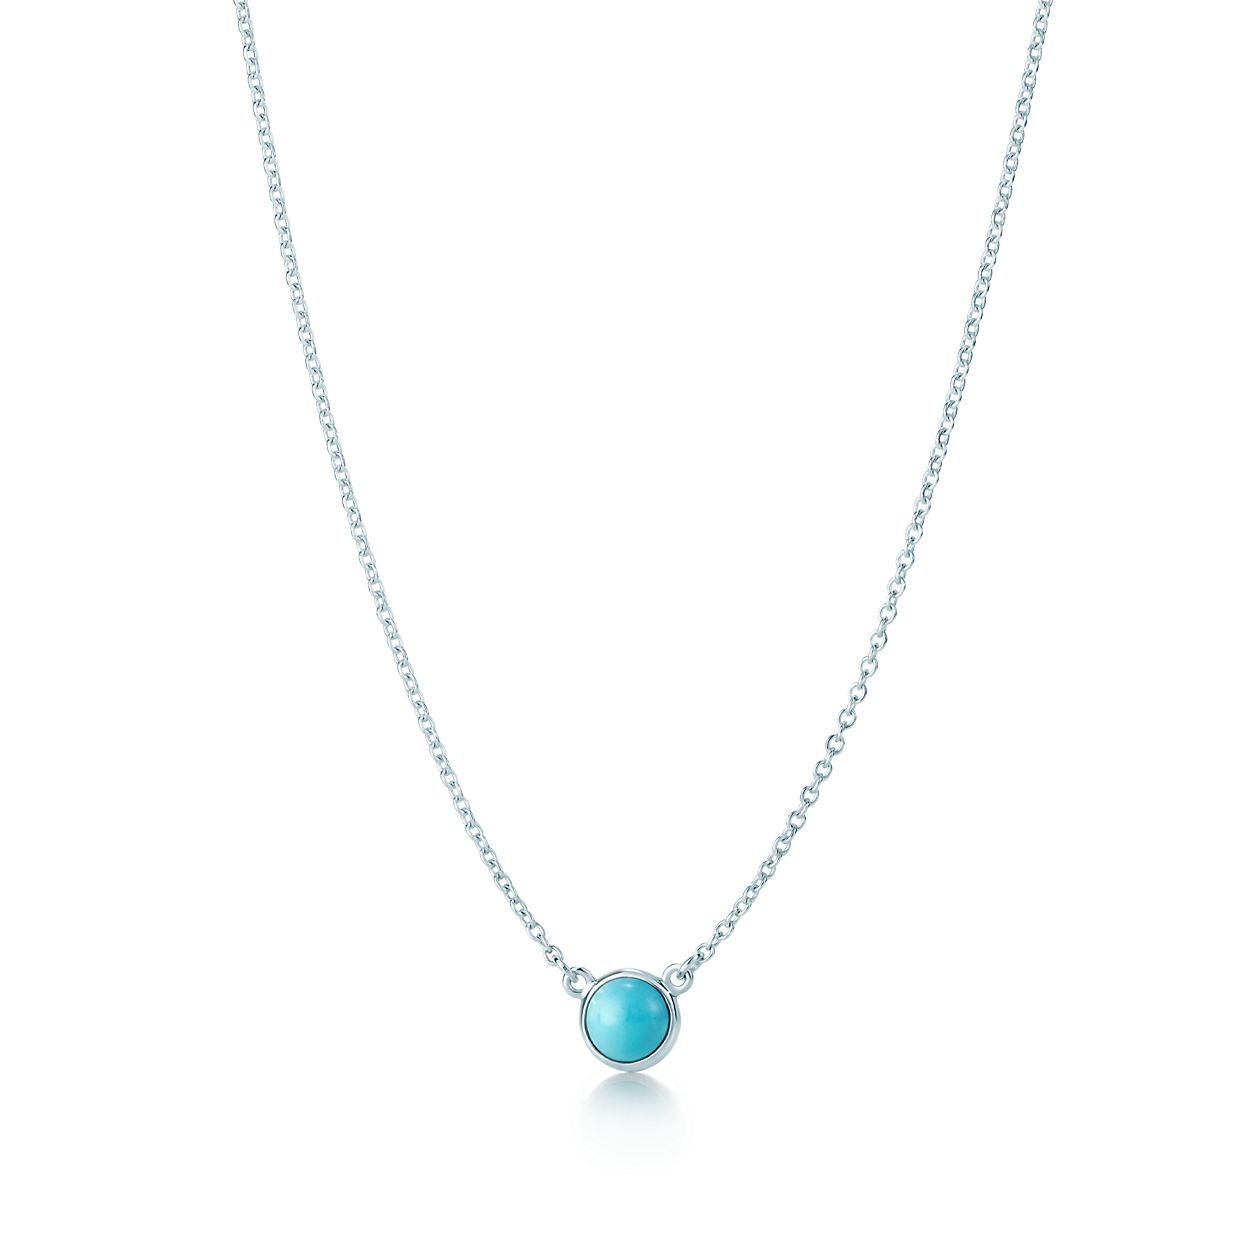 amazon ac necklace dp pendant genuine turquoise jewelry silver sterling com